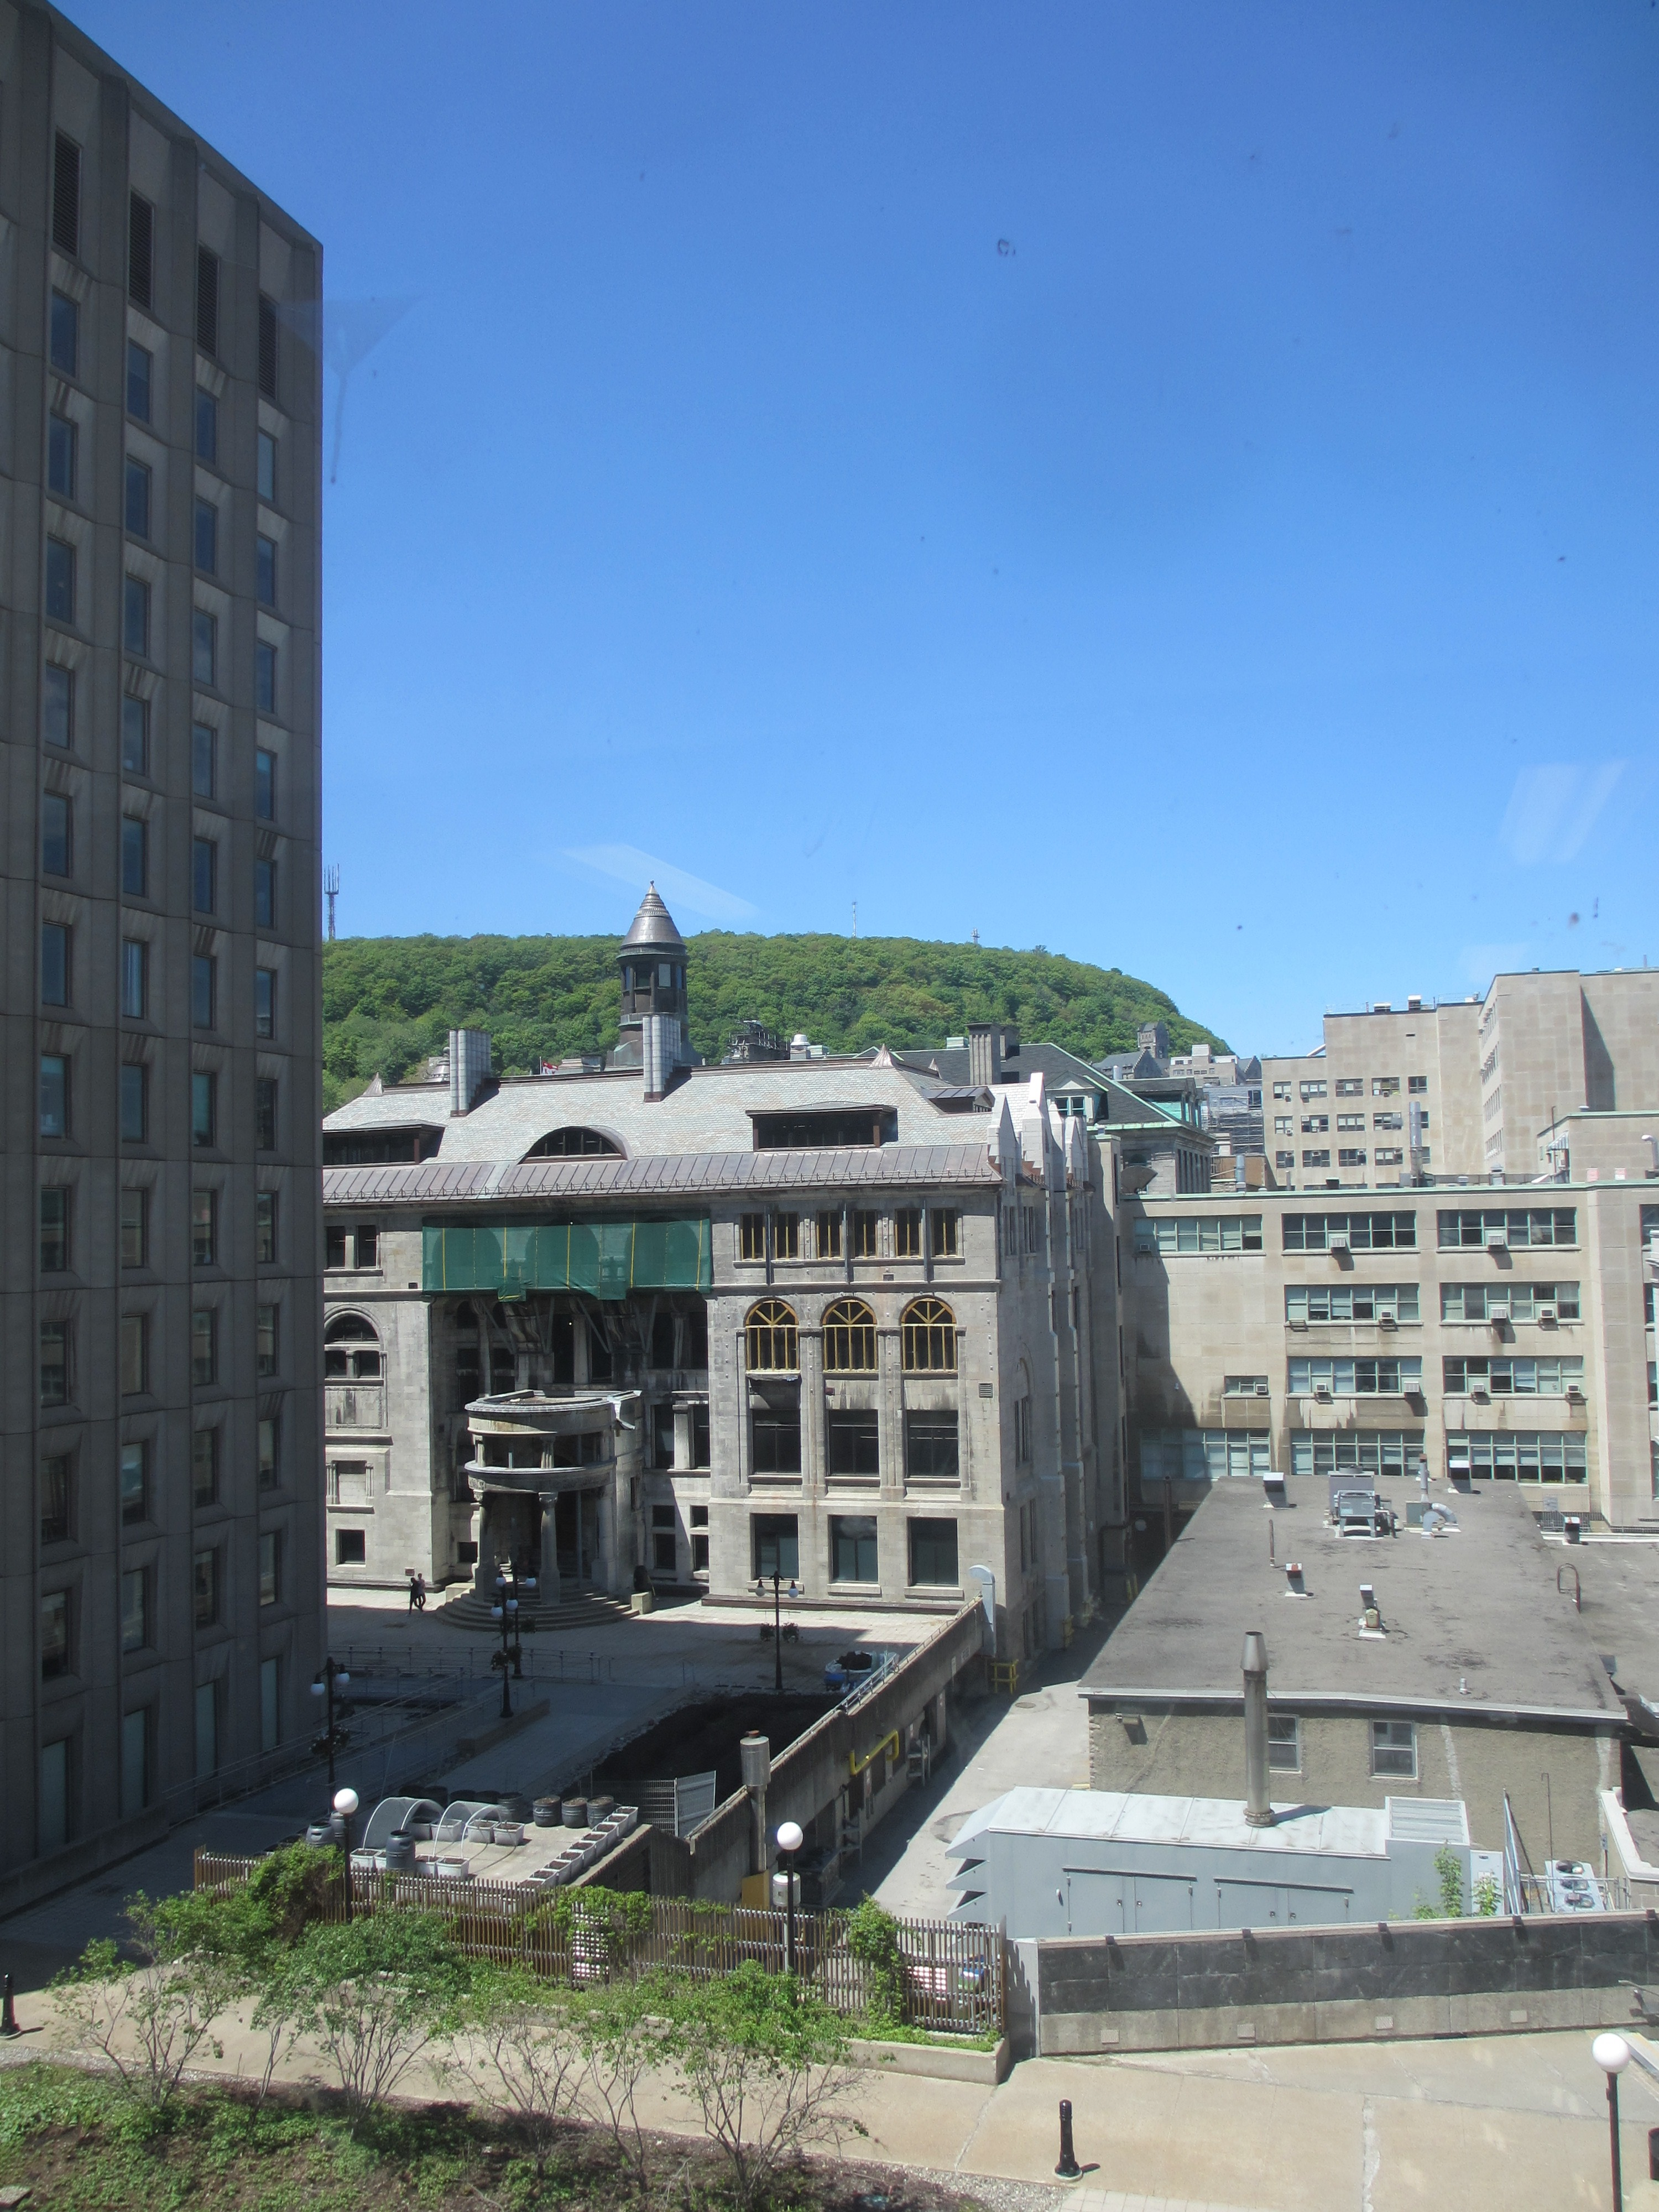 Discussion and Seminar at the McGill University